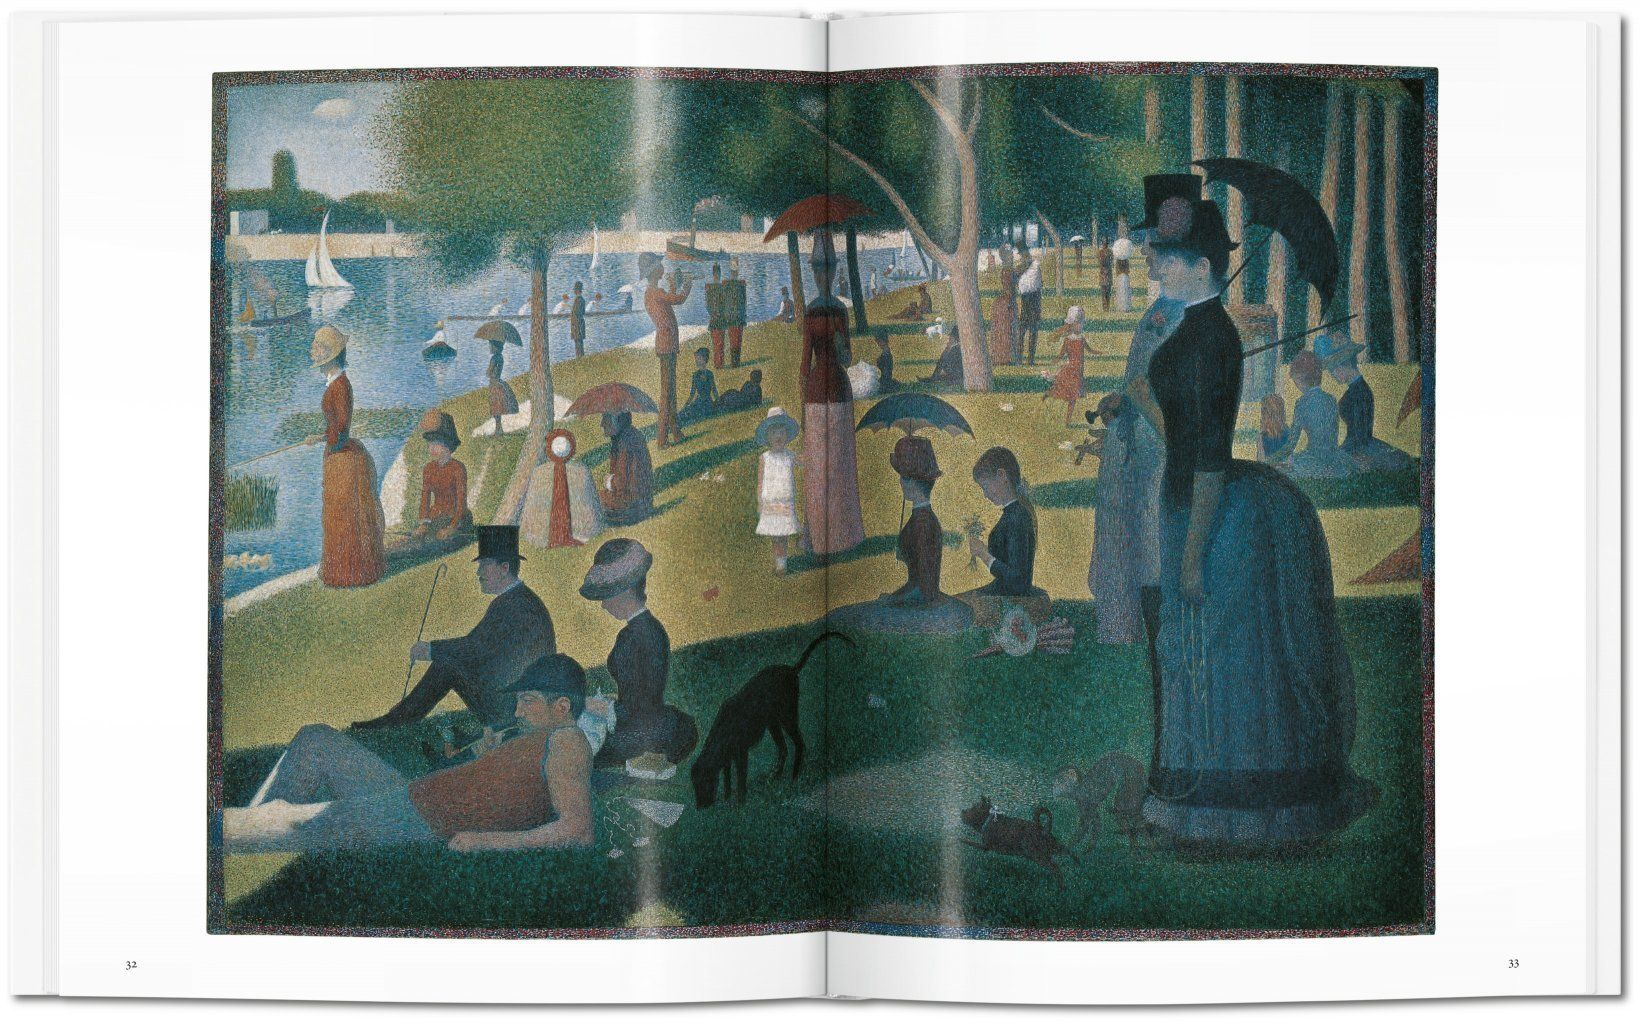 an introduction to the life of georges seurat In 1879 georges seurat left the ecole des beaux art and rented a small studio in paris he lived the reclusive life of an art fanatic, passionately devoting his time and efforts on tinkering with color theories.